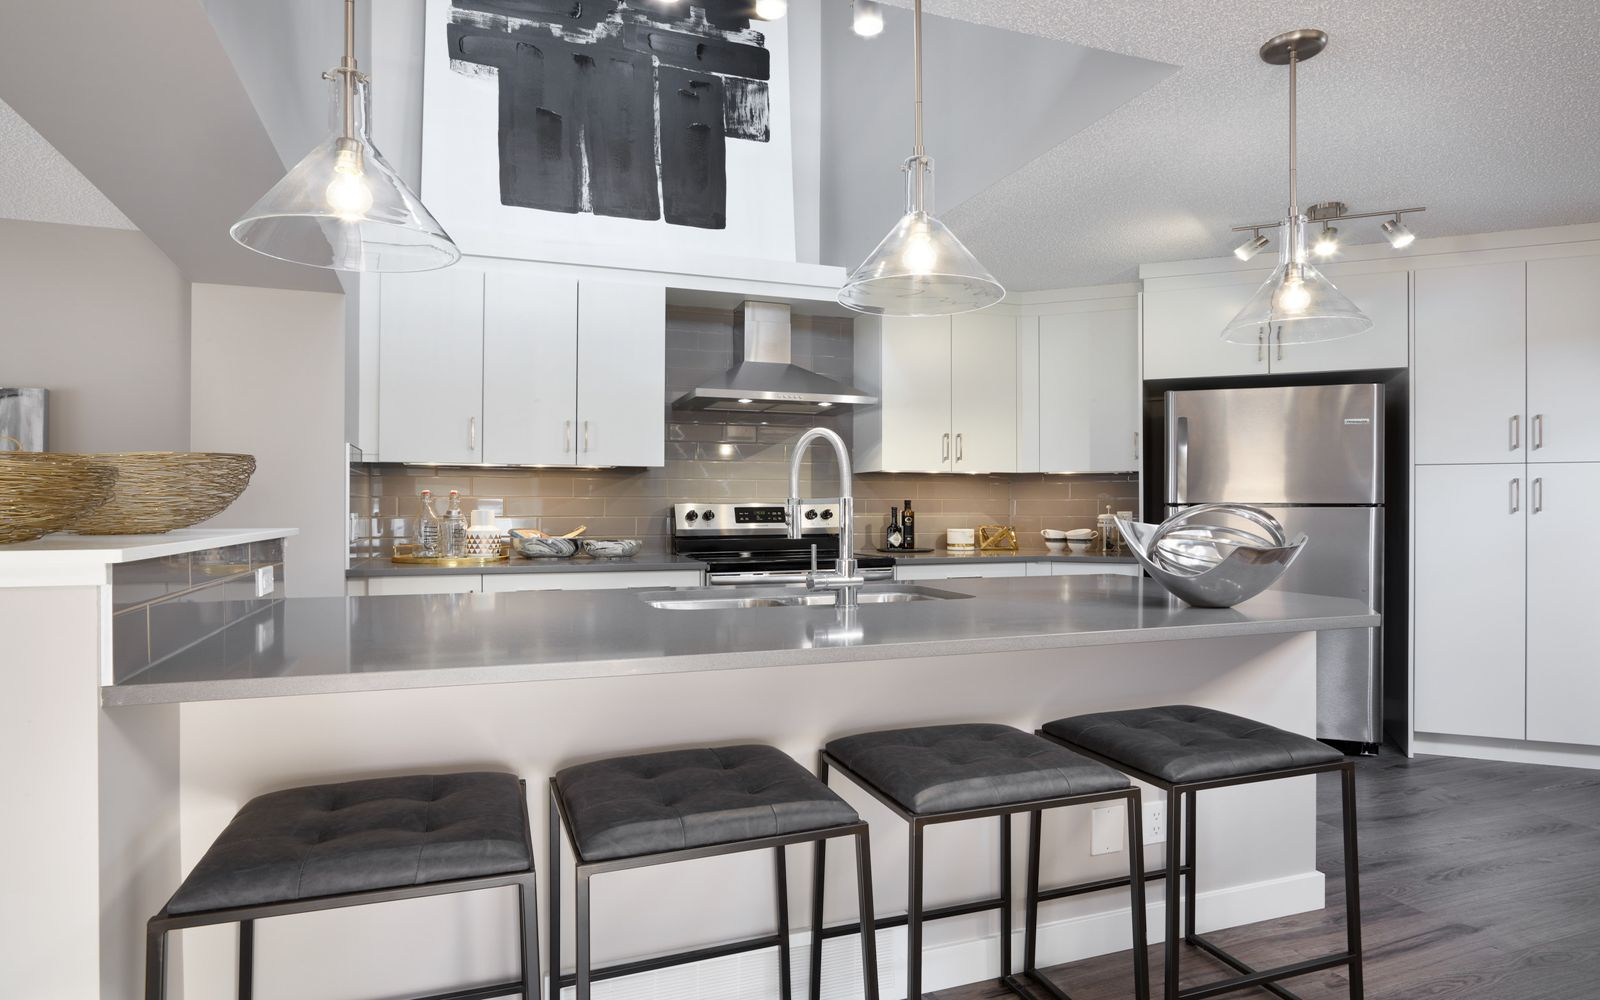 The kitchen in the Belvedere 3 model by Brookfield Residential in Calgary.